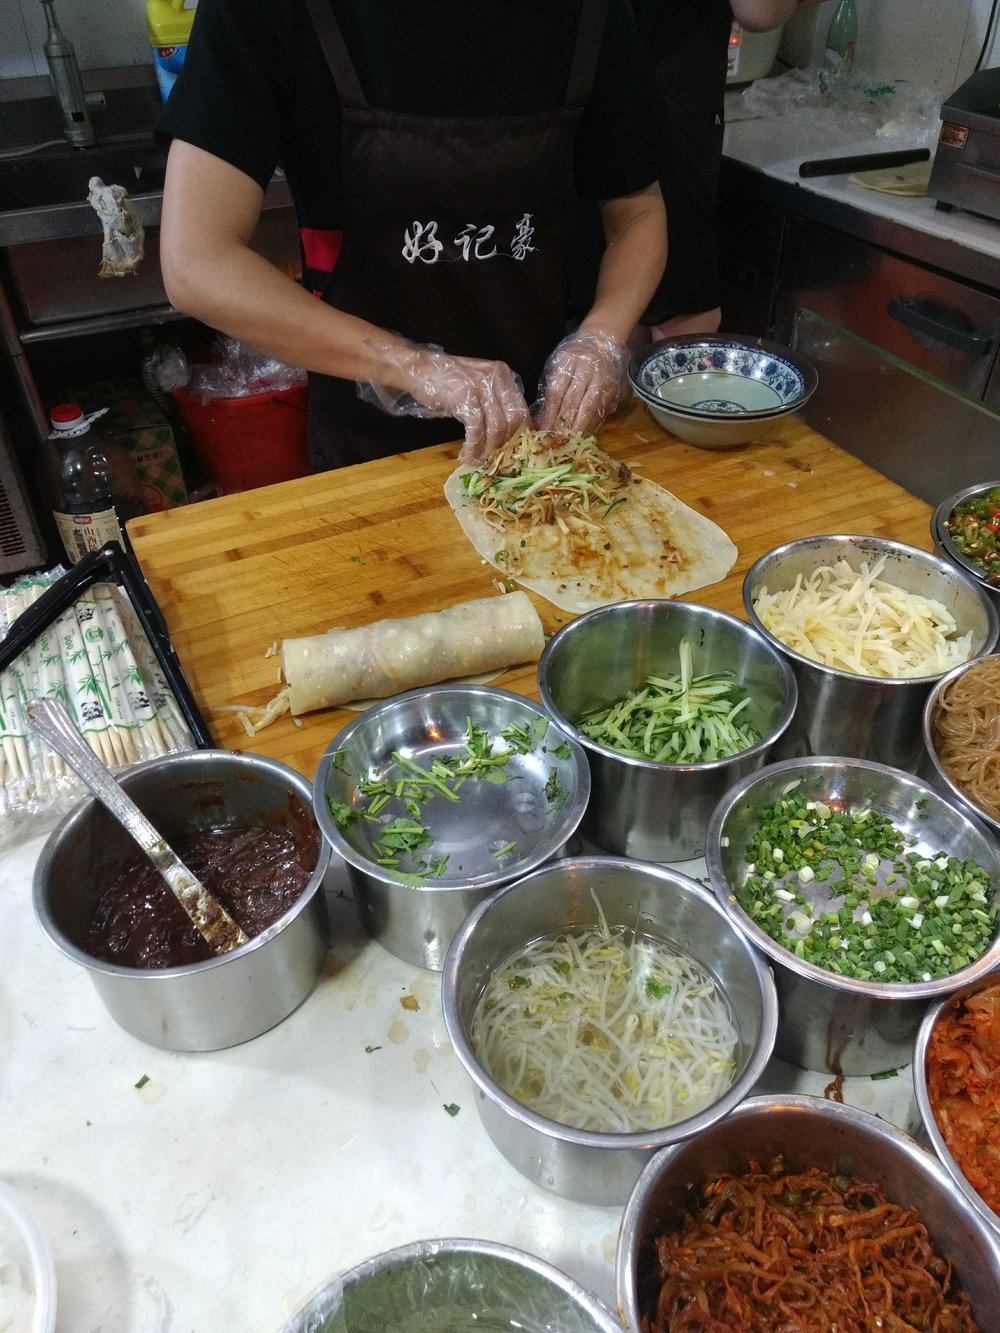 ??????, best street food in Ningbo